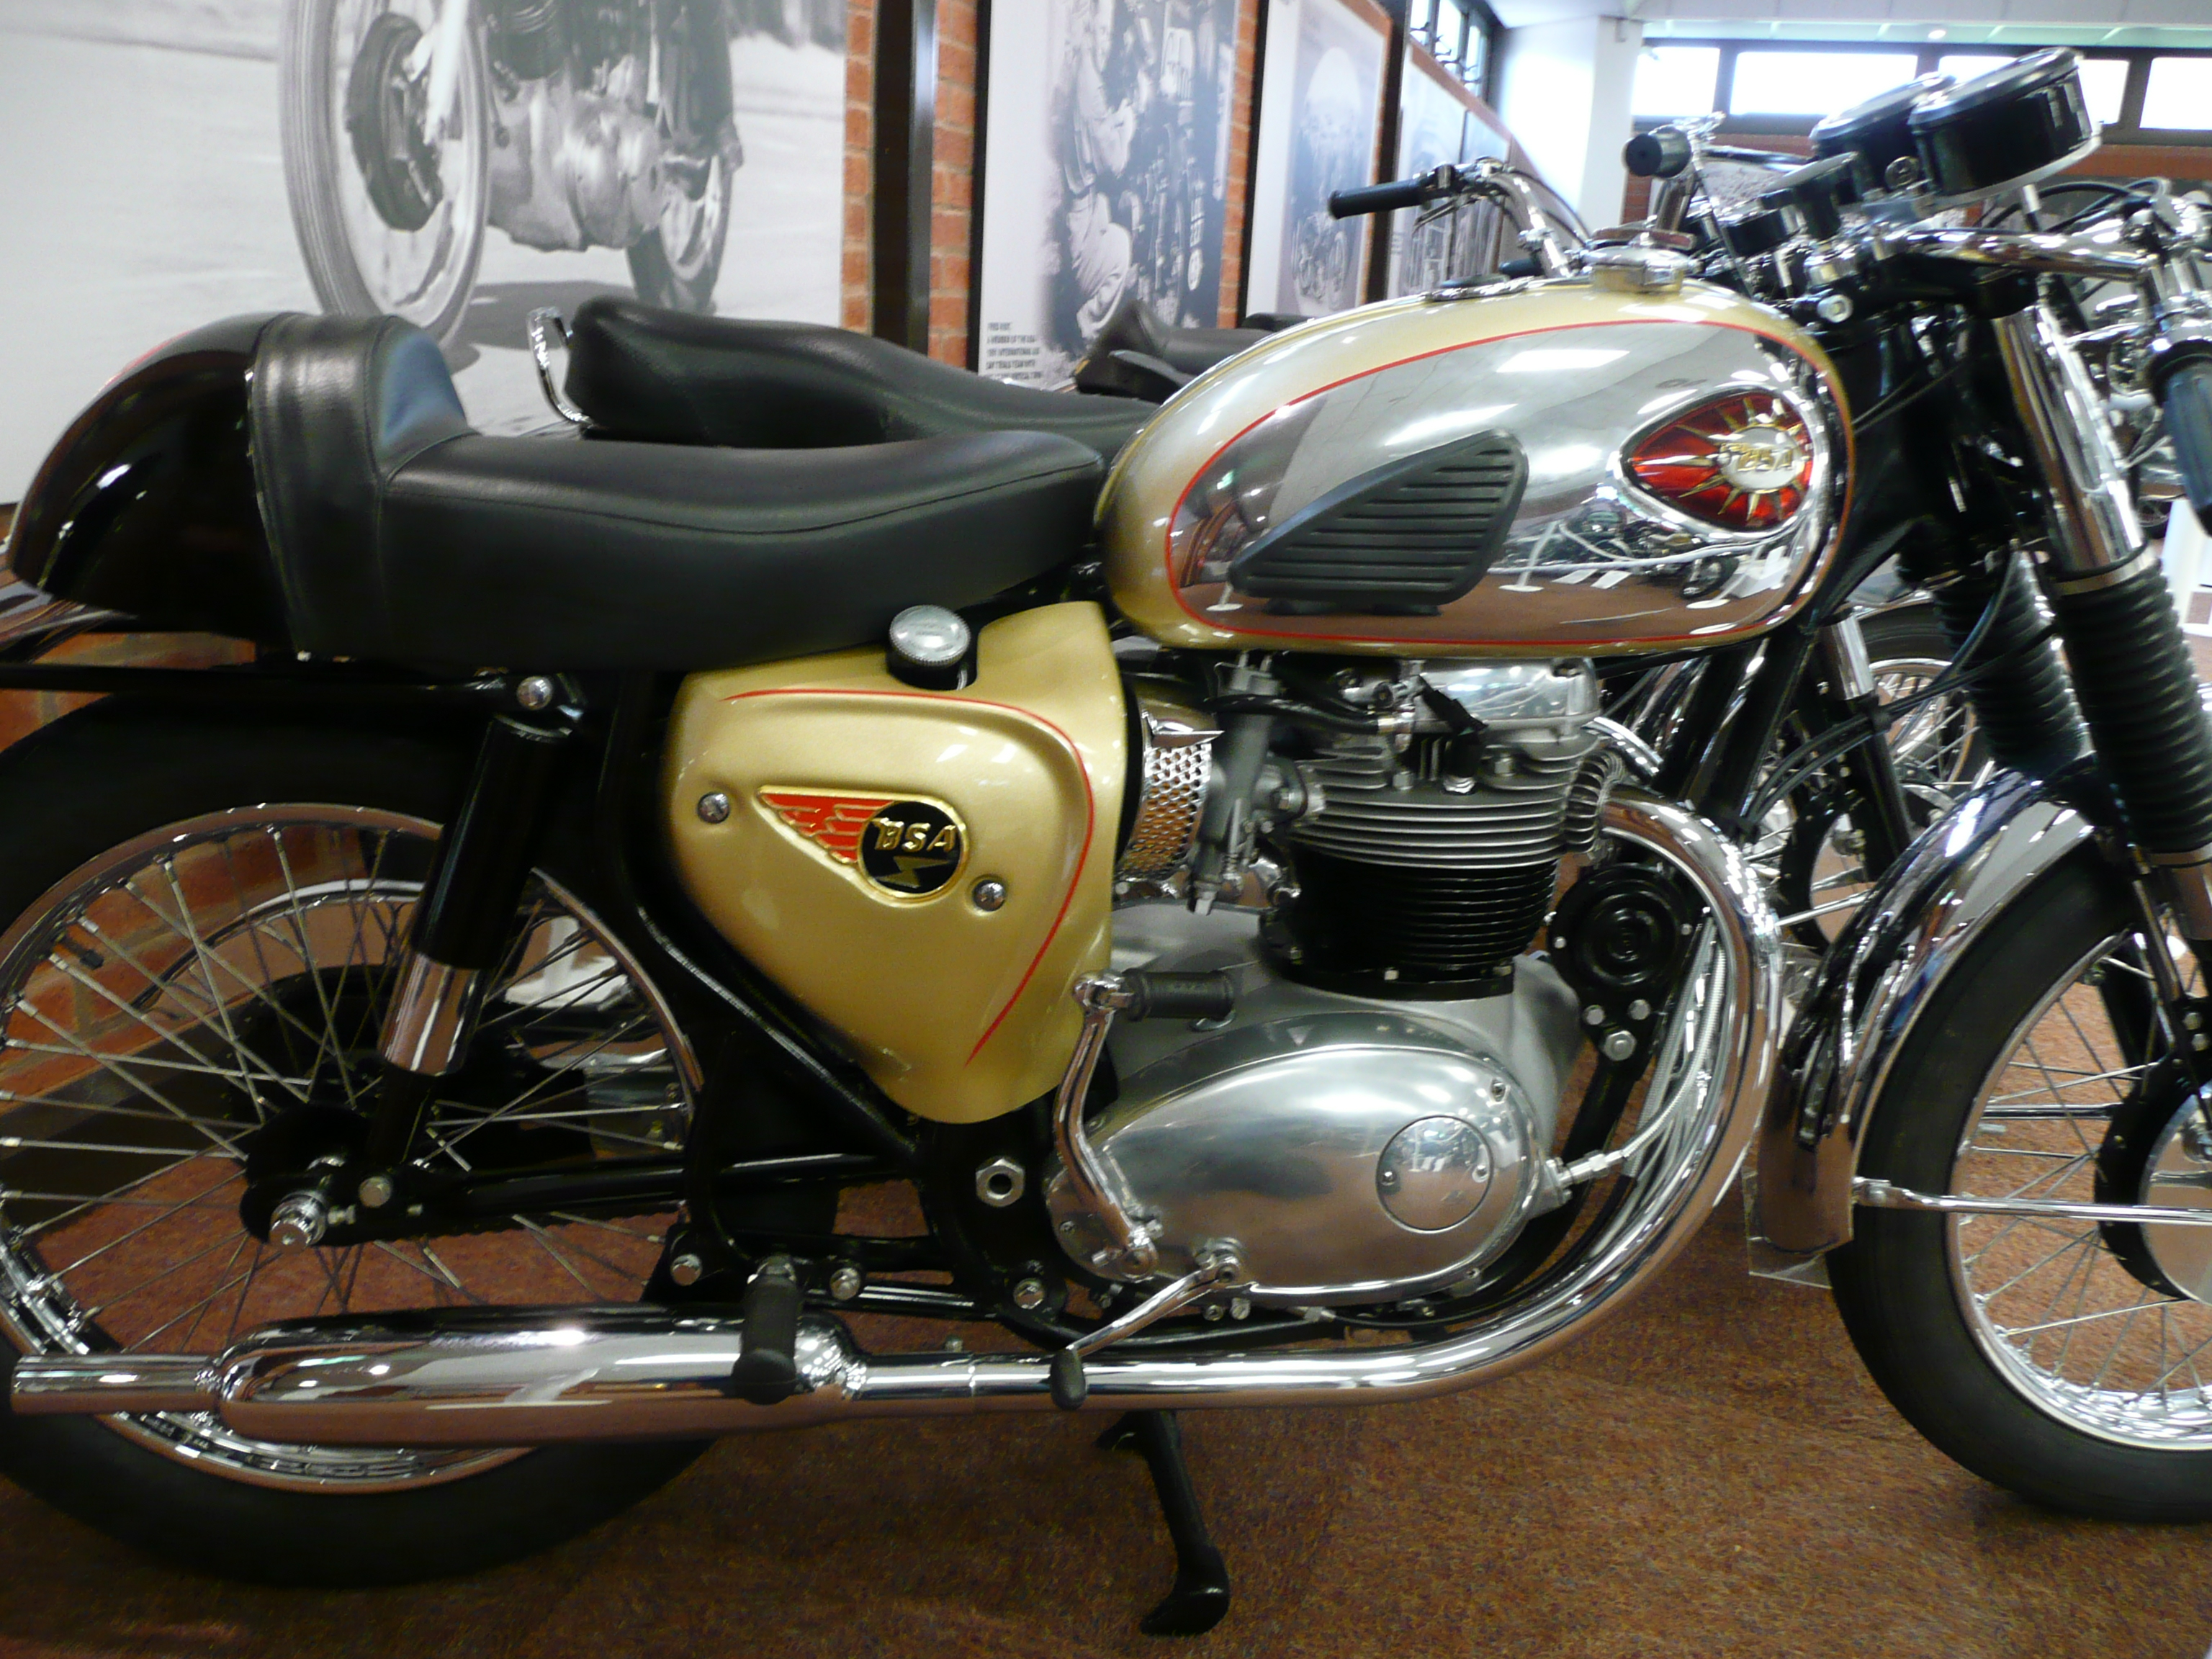 Bsa lightning photo - 2